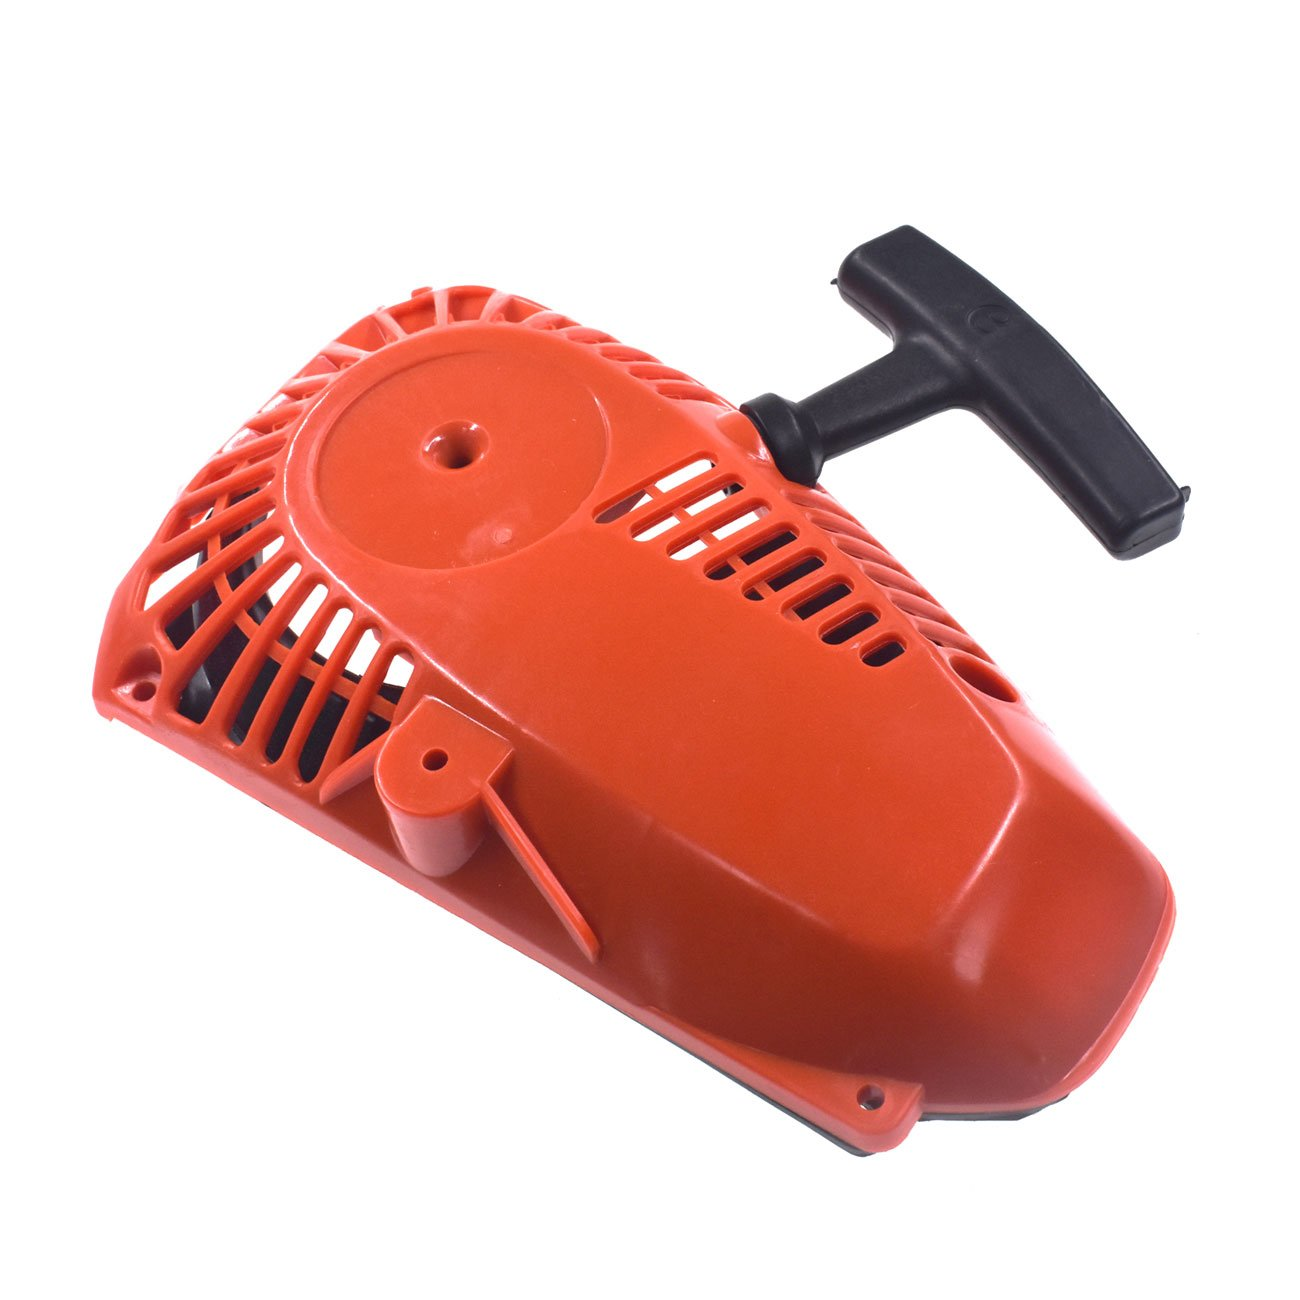 JRL RECOIL PULL START STARTER ASSEMBLY FITS CHINESE CHAINSAW 2500 25CC